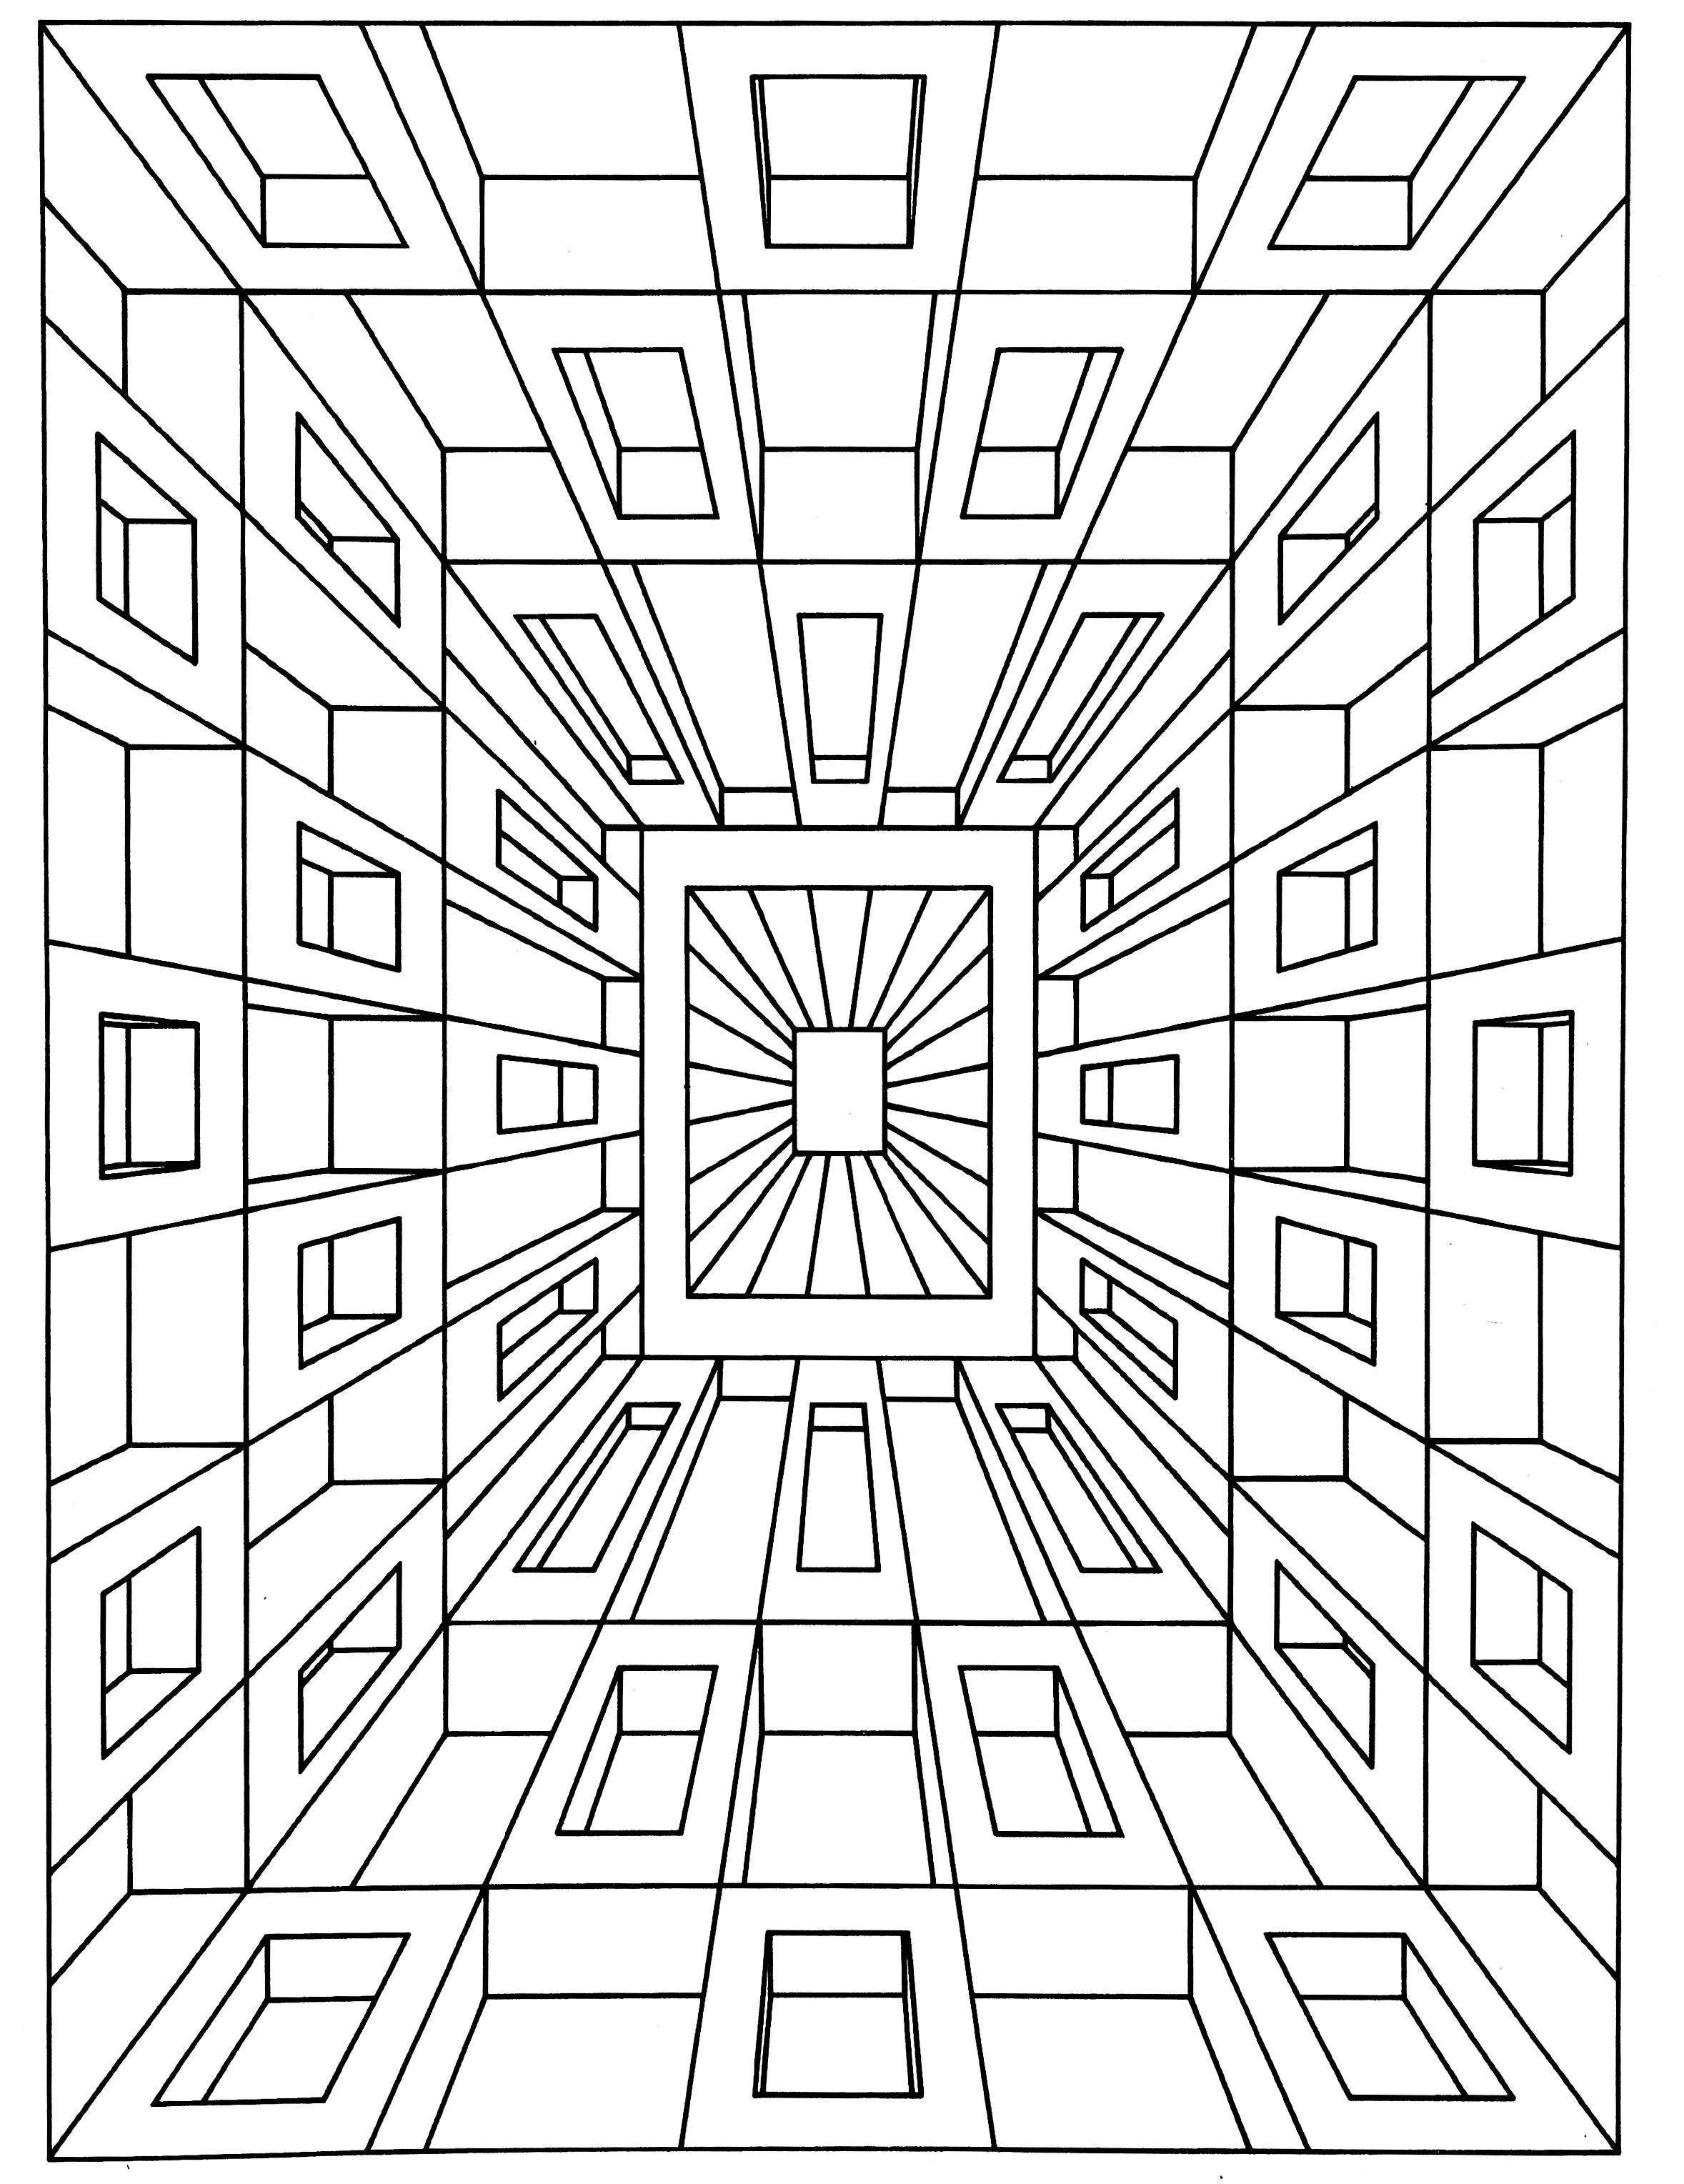 vasarely coloring pages - photo#14